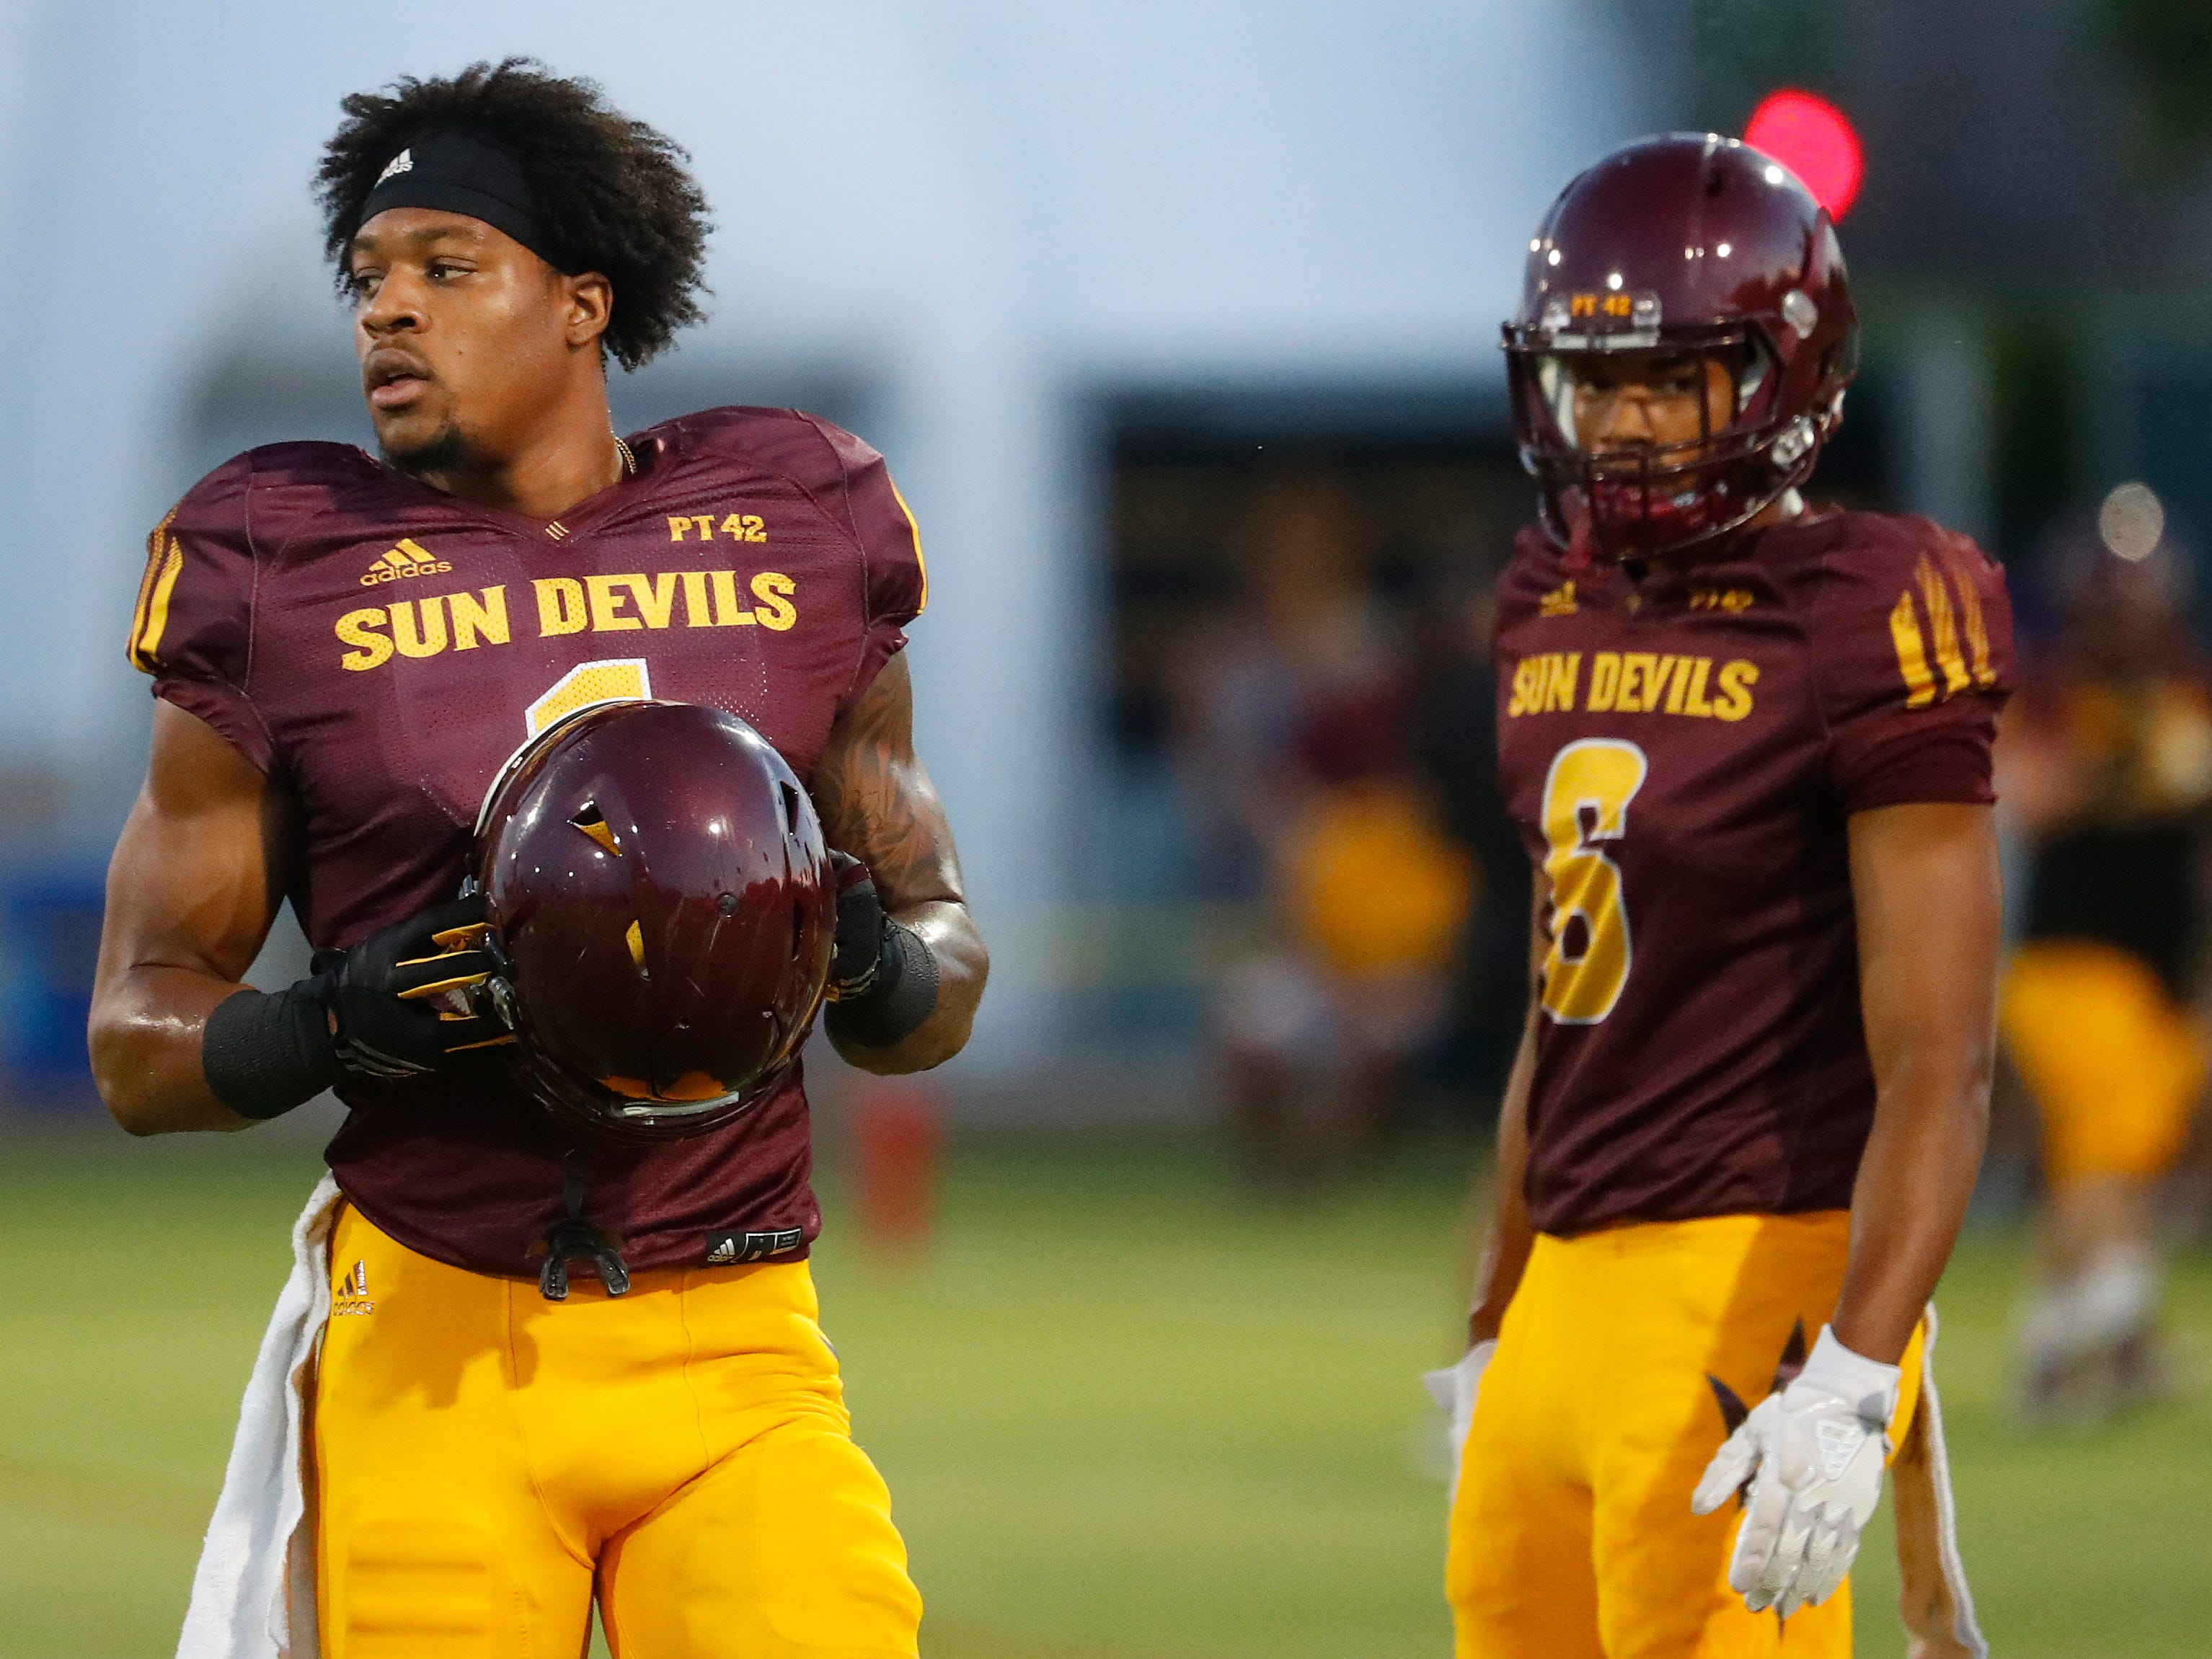 N'Keal Harry (1) prepares to run a drill during the ASU scrimmage at Kajikawa Practice Fields in Tempe, Ariz. on Aug. 11, 2018.